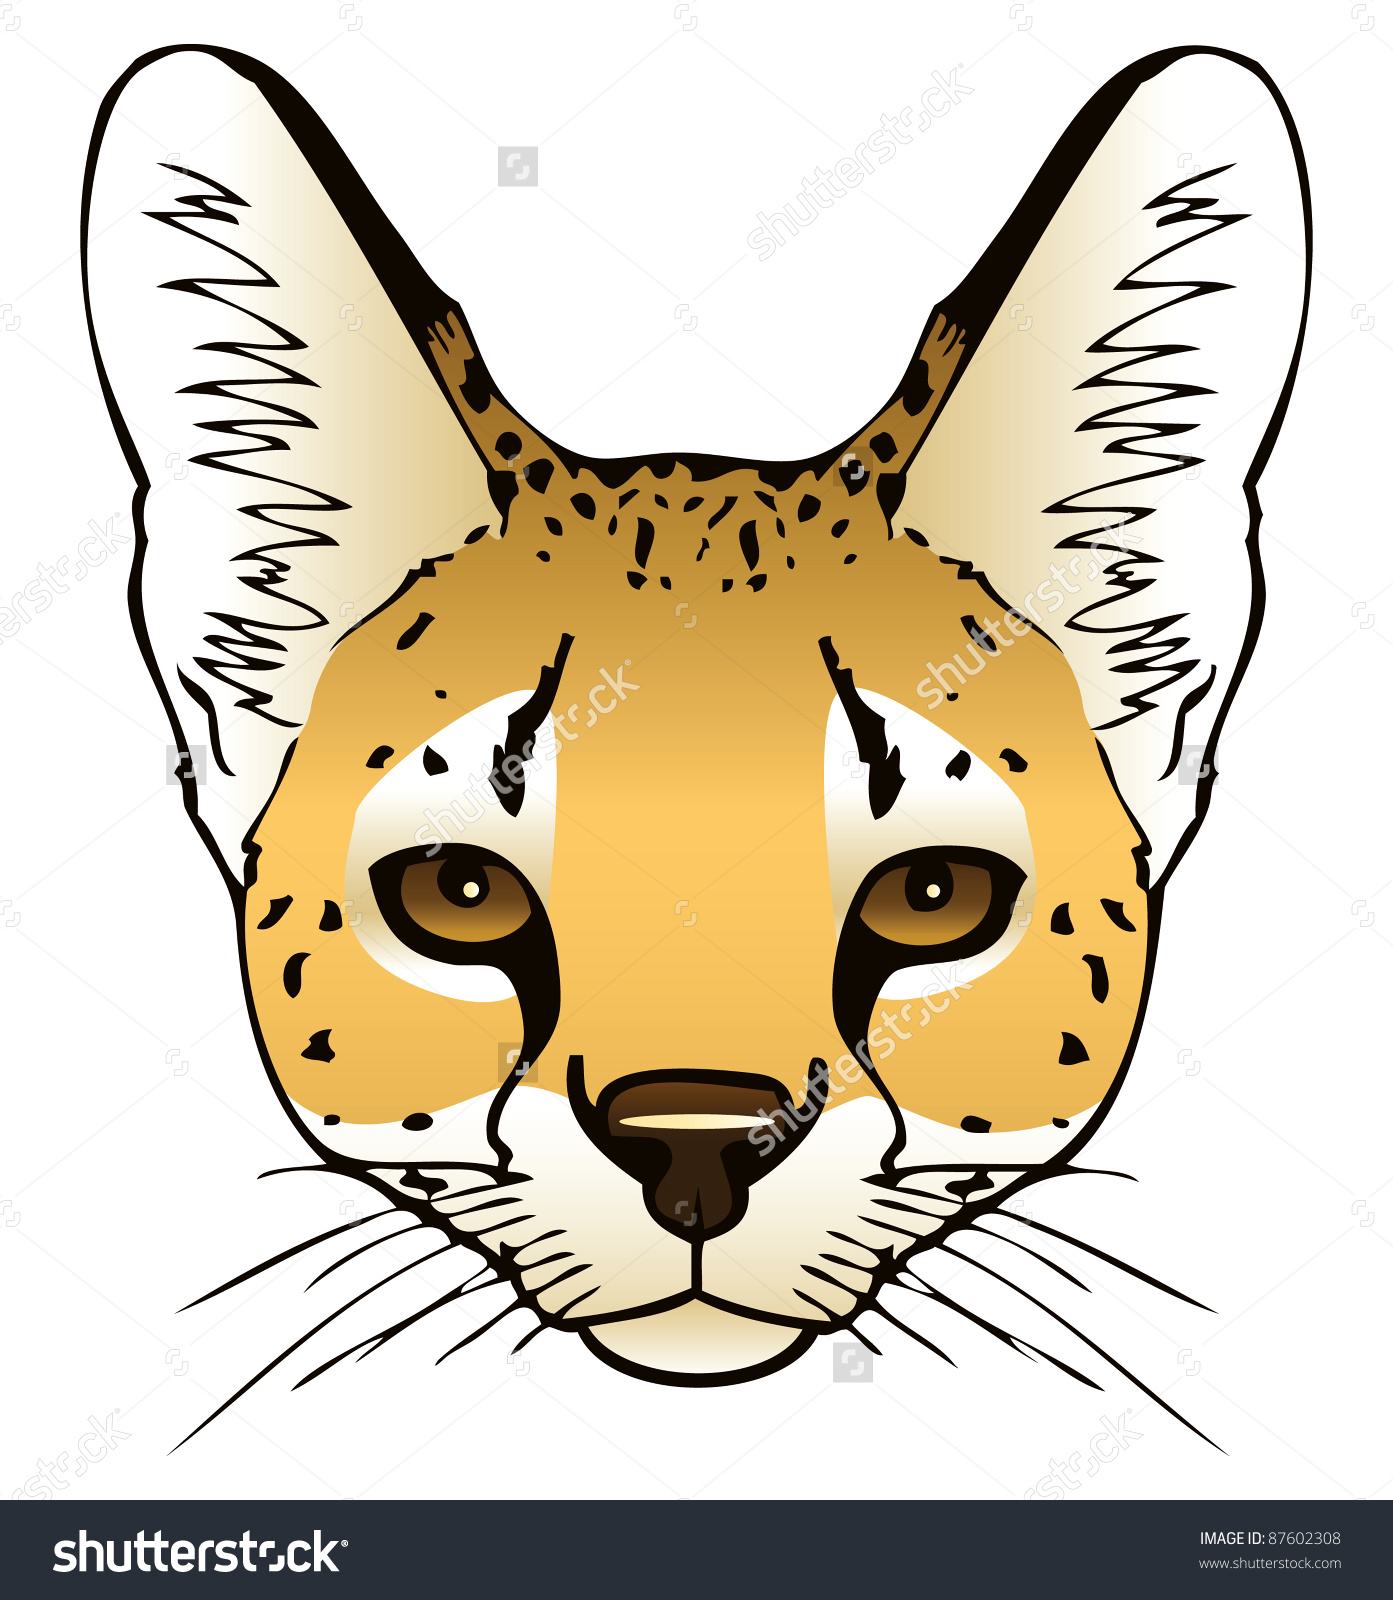 Serval clipart #12, Download drawings